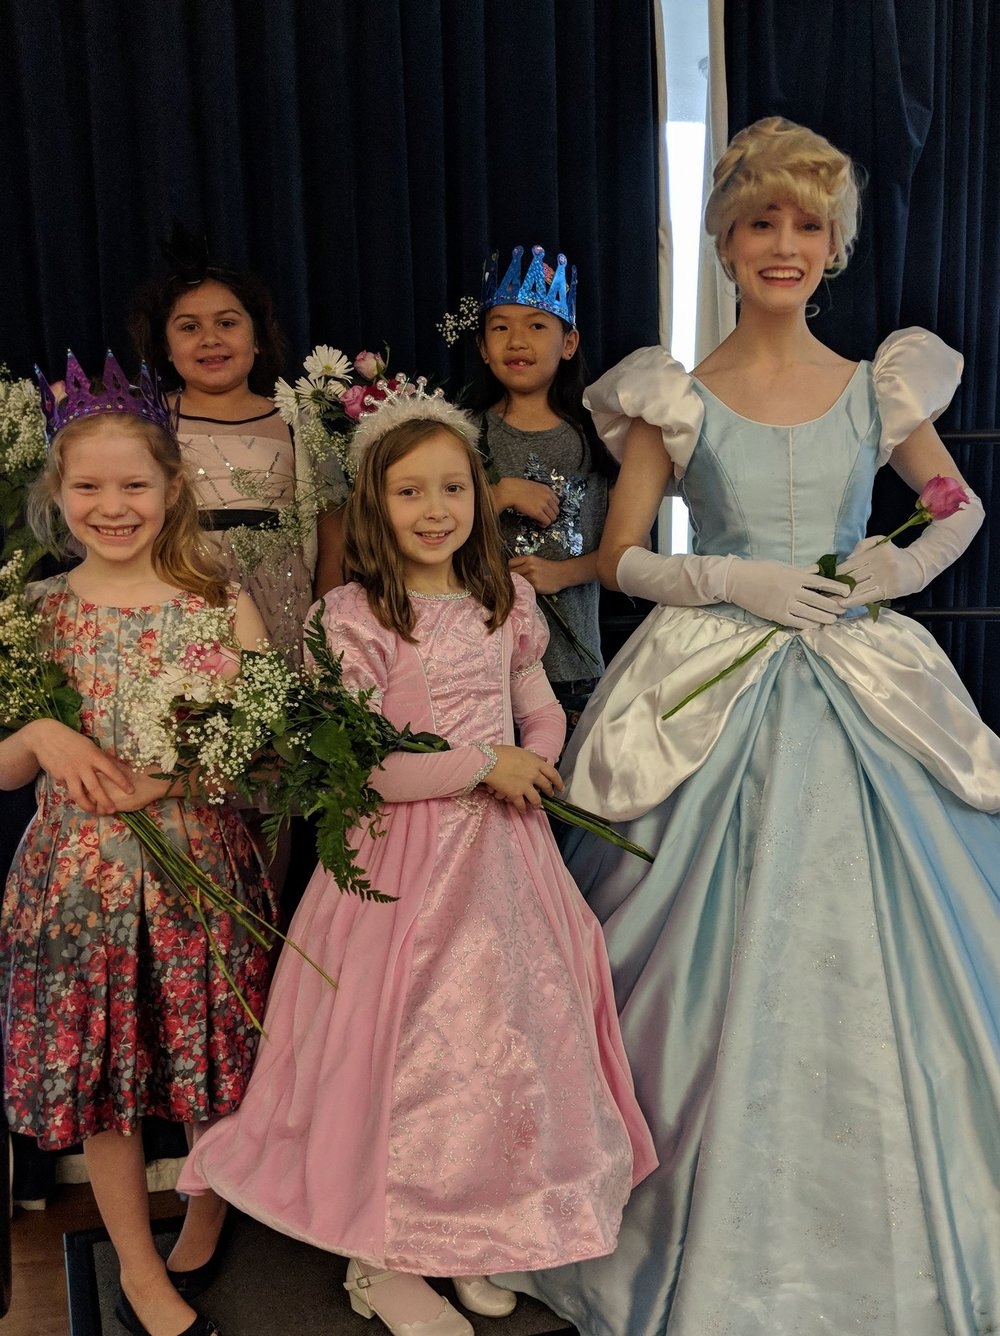 Children at The British International School of New York made their celebration a truly royal affair!